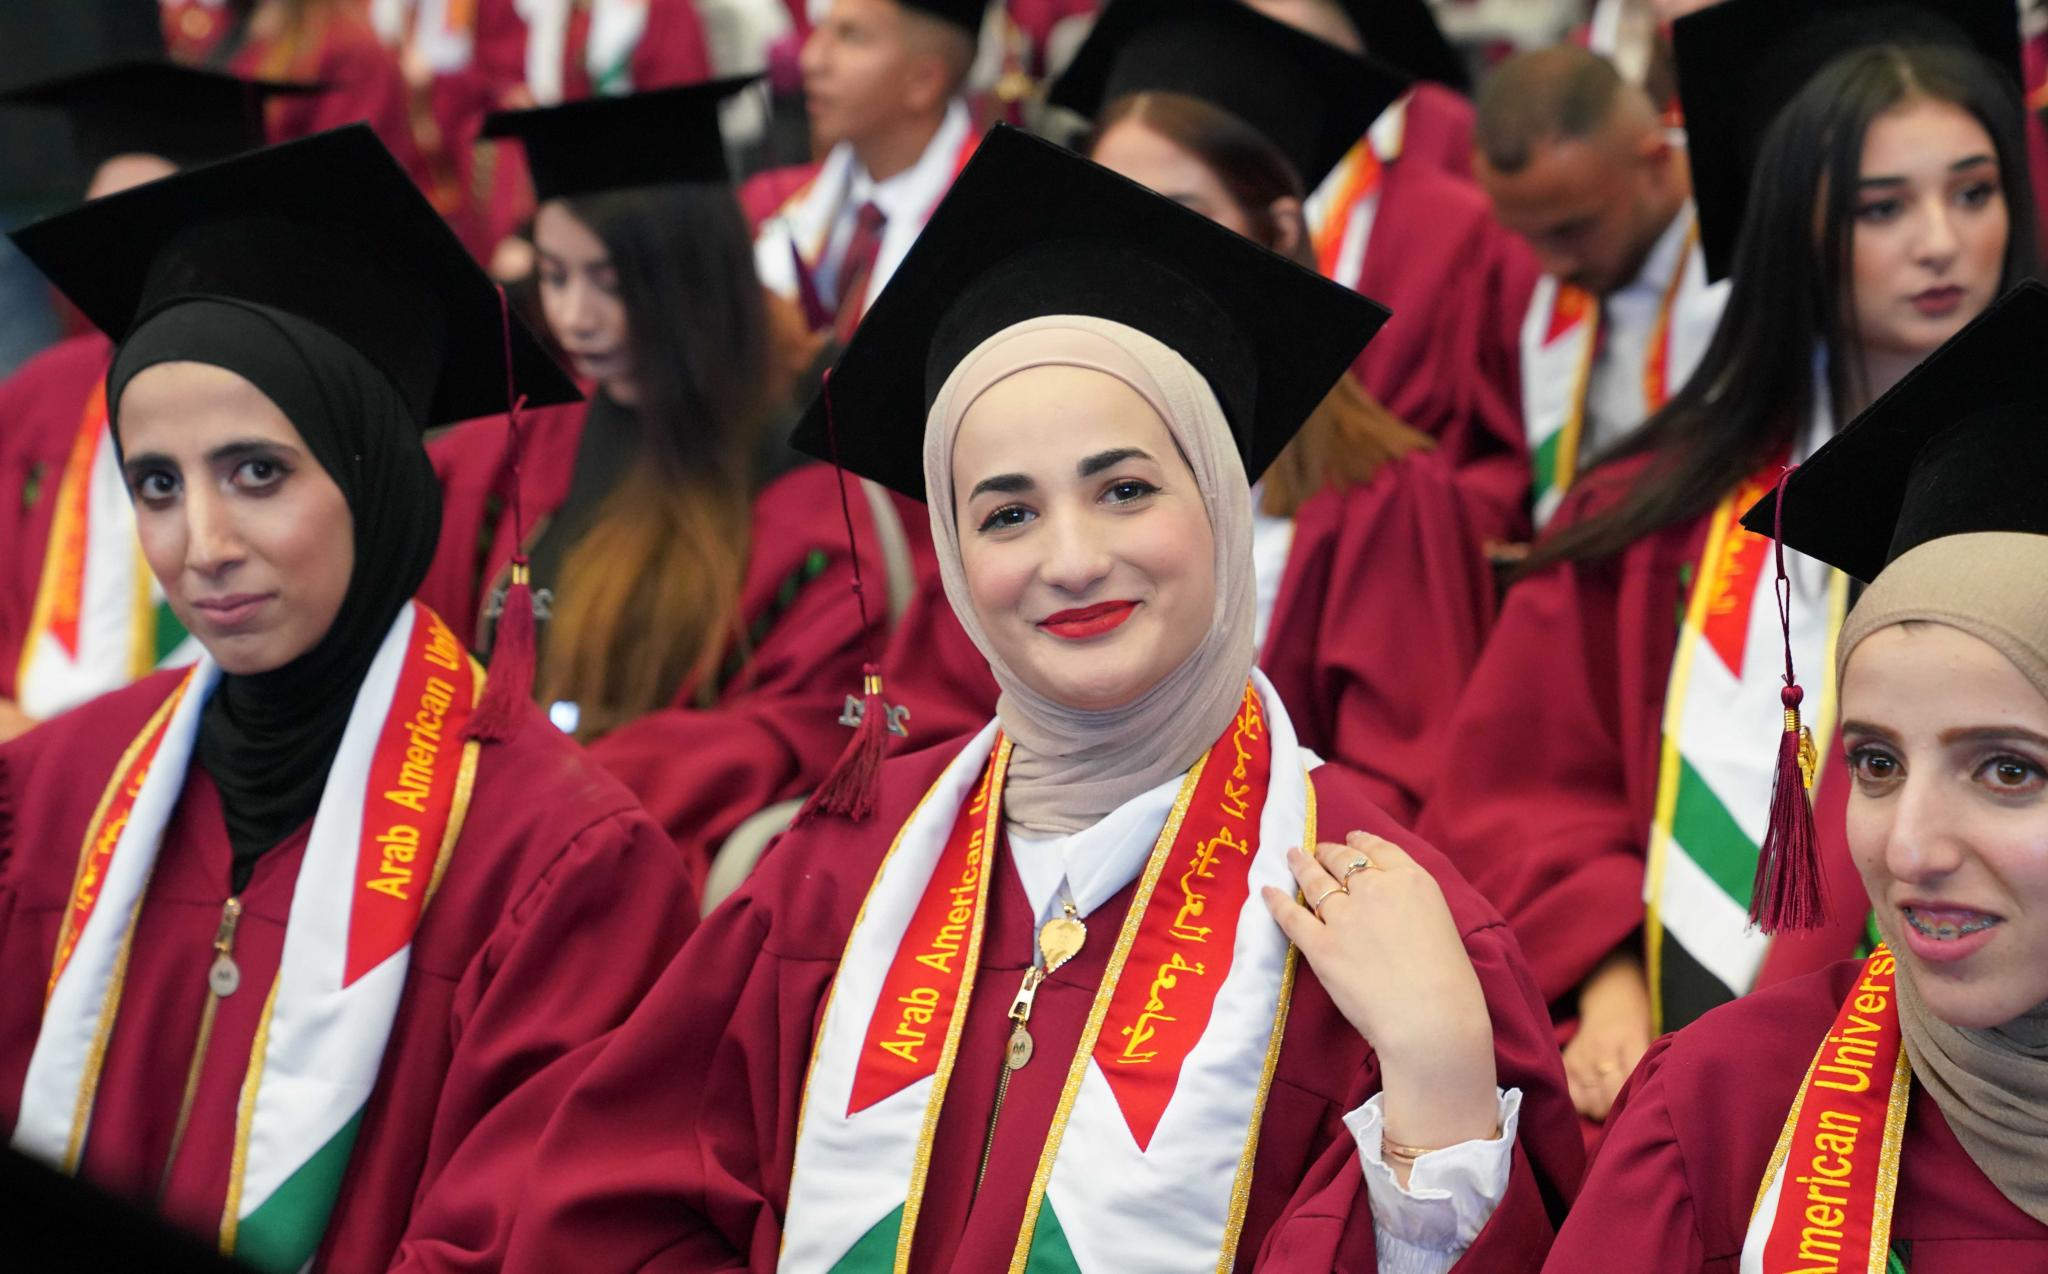 AAUP Celebrating the Graduation Ceremonies of its 17th and 18th Cohorts from the Faculties of Allied Medical Sciences and Nursing